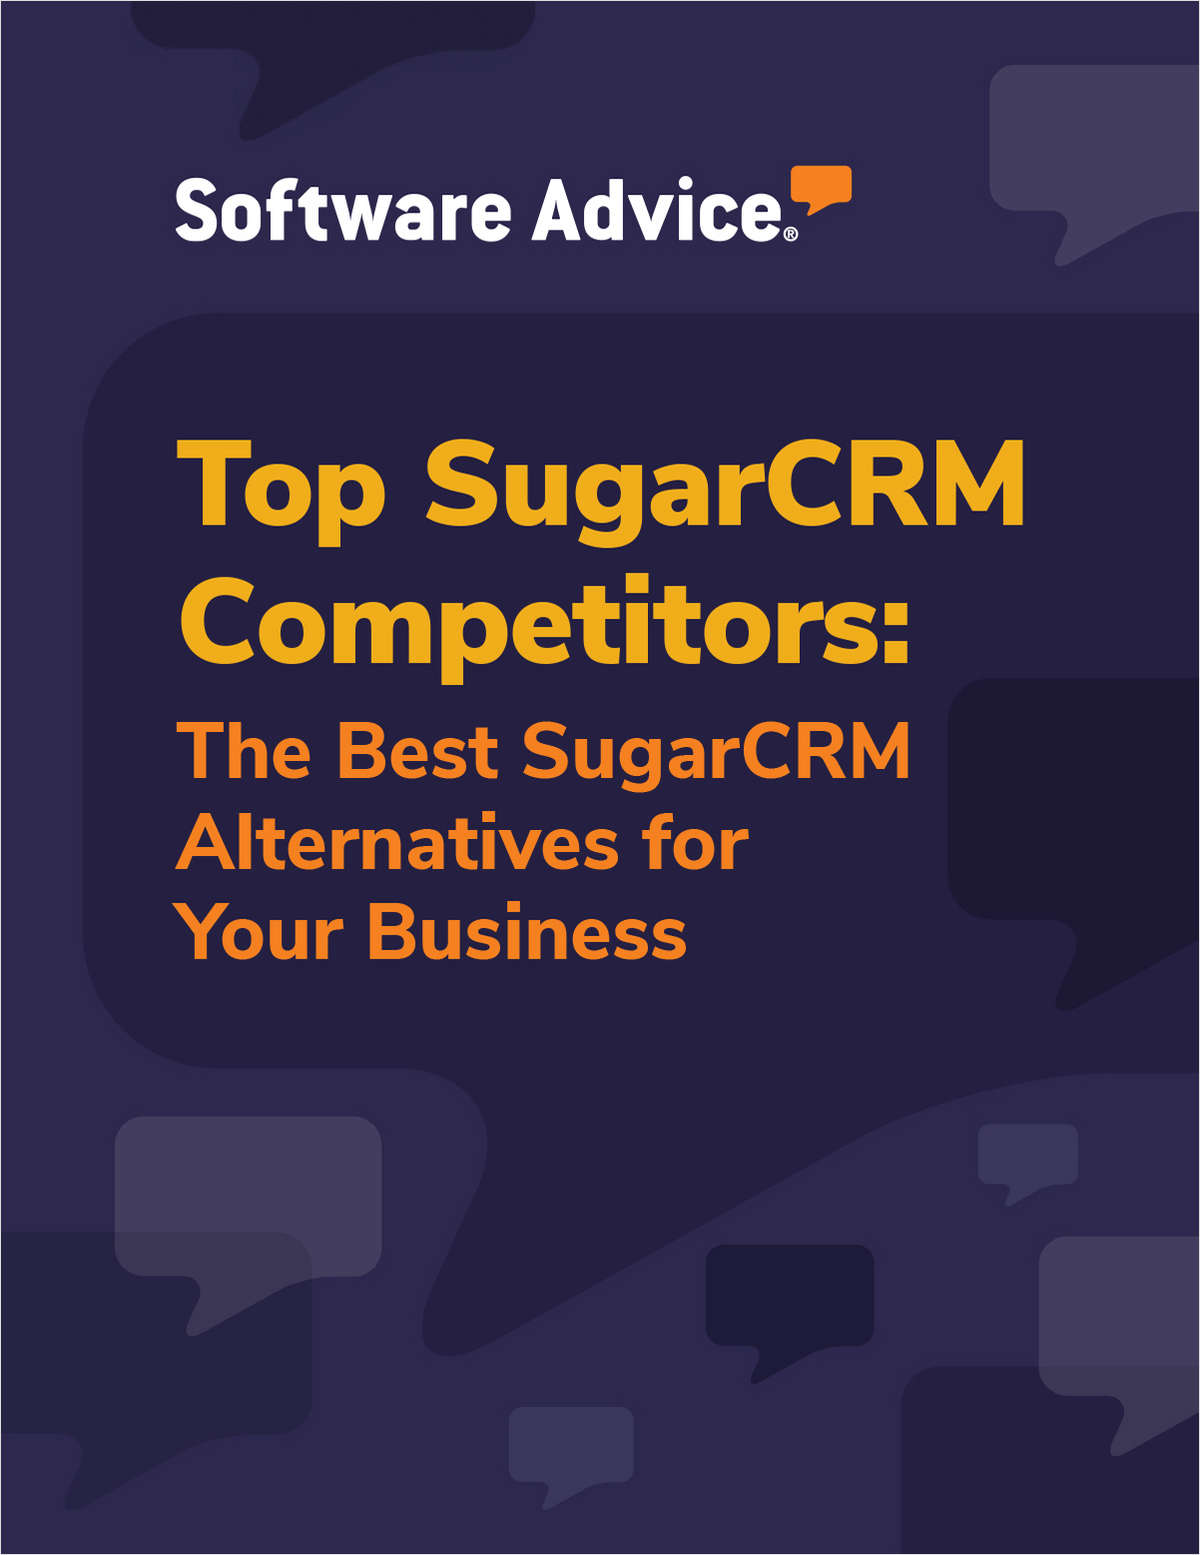 Discover How Top Customer Relationship Management Systems Compare to SugarCRM